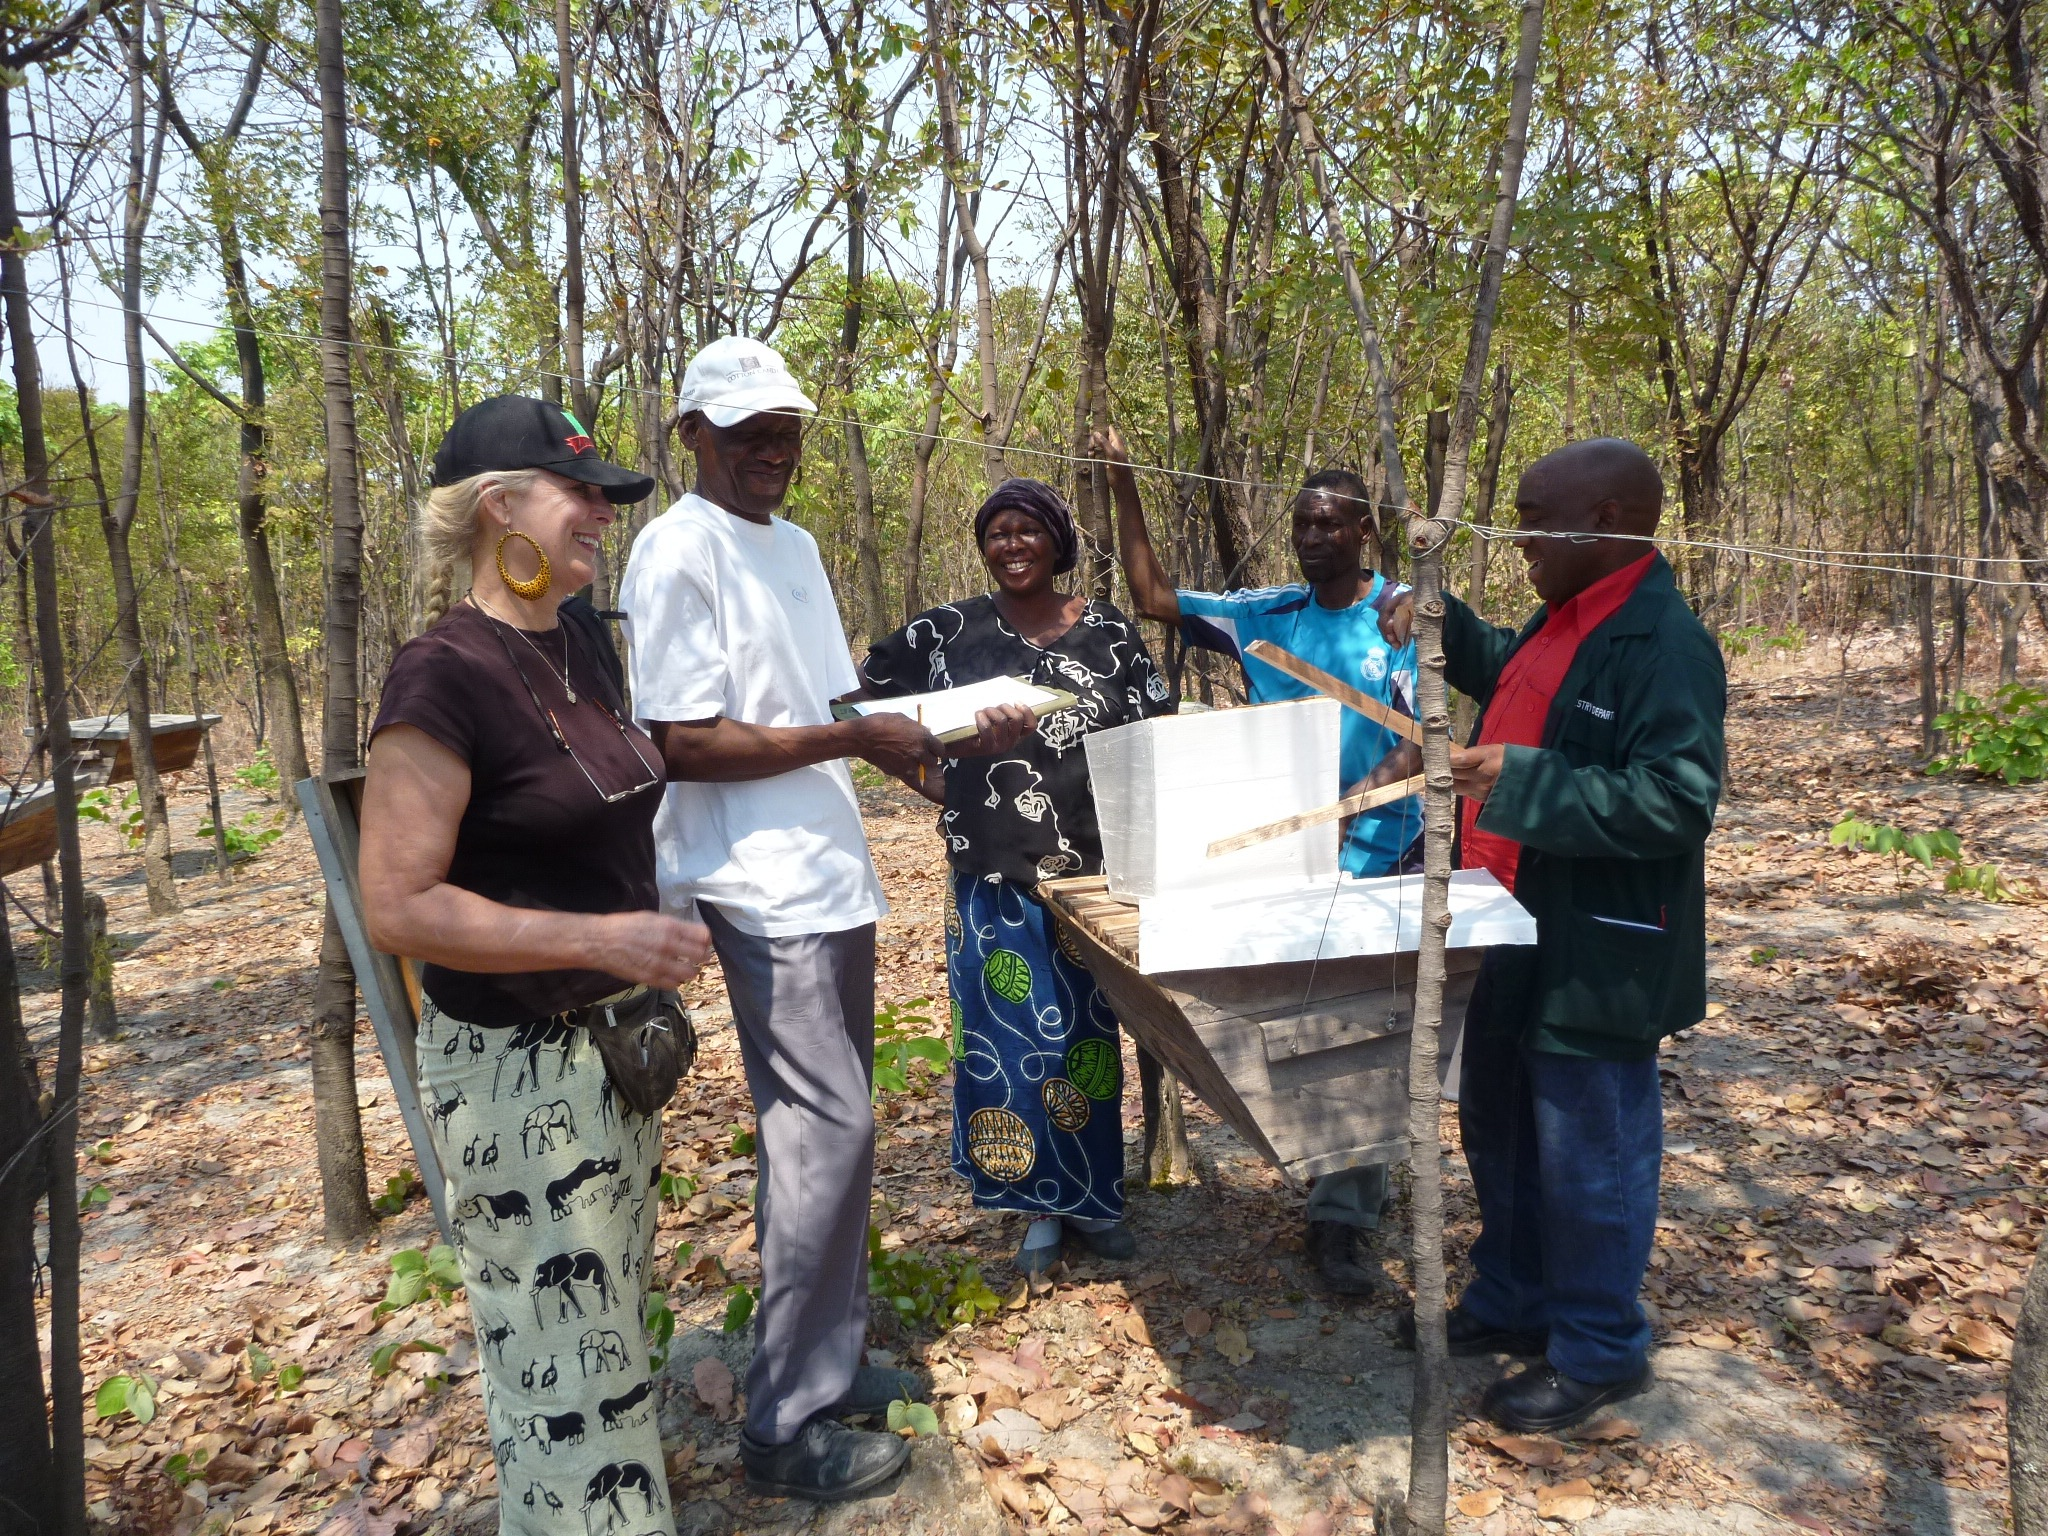 June - Bee keeping business established. Forestry Dept. was hired to train 10 villagers how to start a bee keeping business. The government donated 11 beehives, then a donation from Streetsville Rotary Clubprovided clothes, boots, and start up supplies.(blog post)